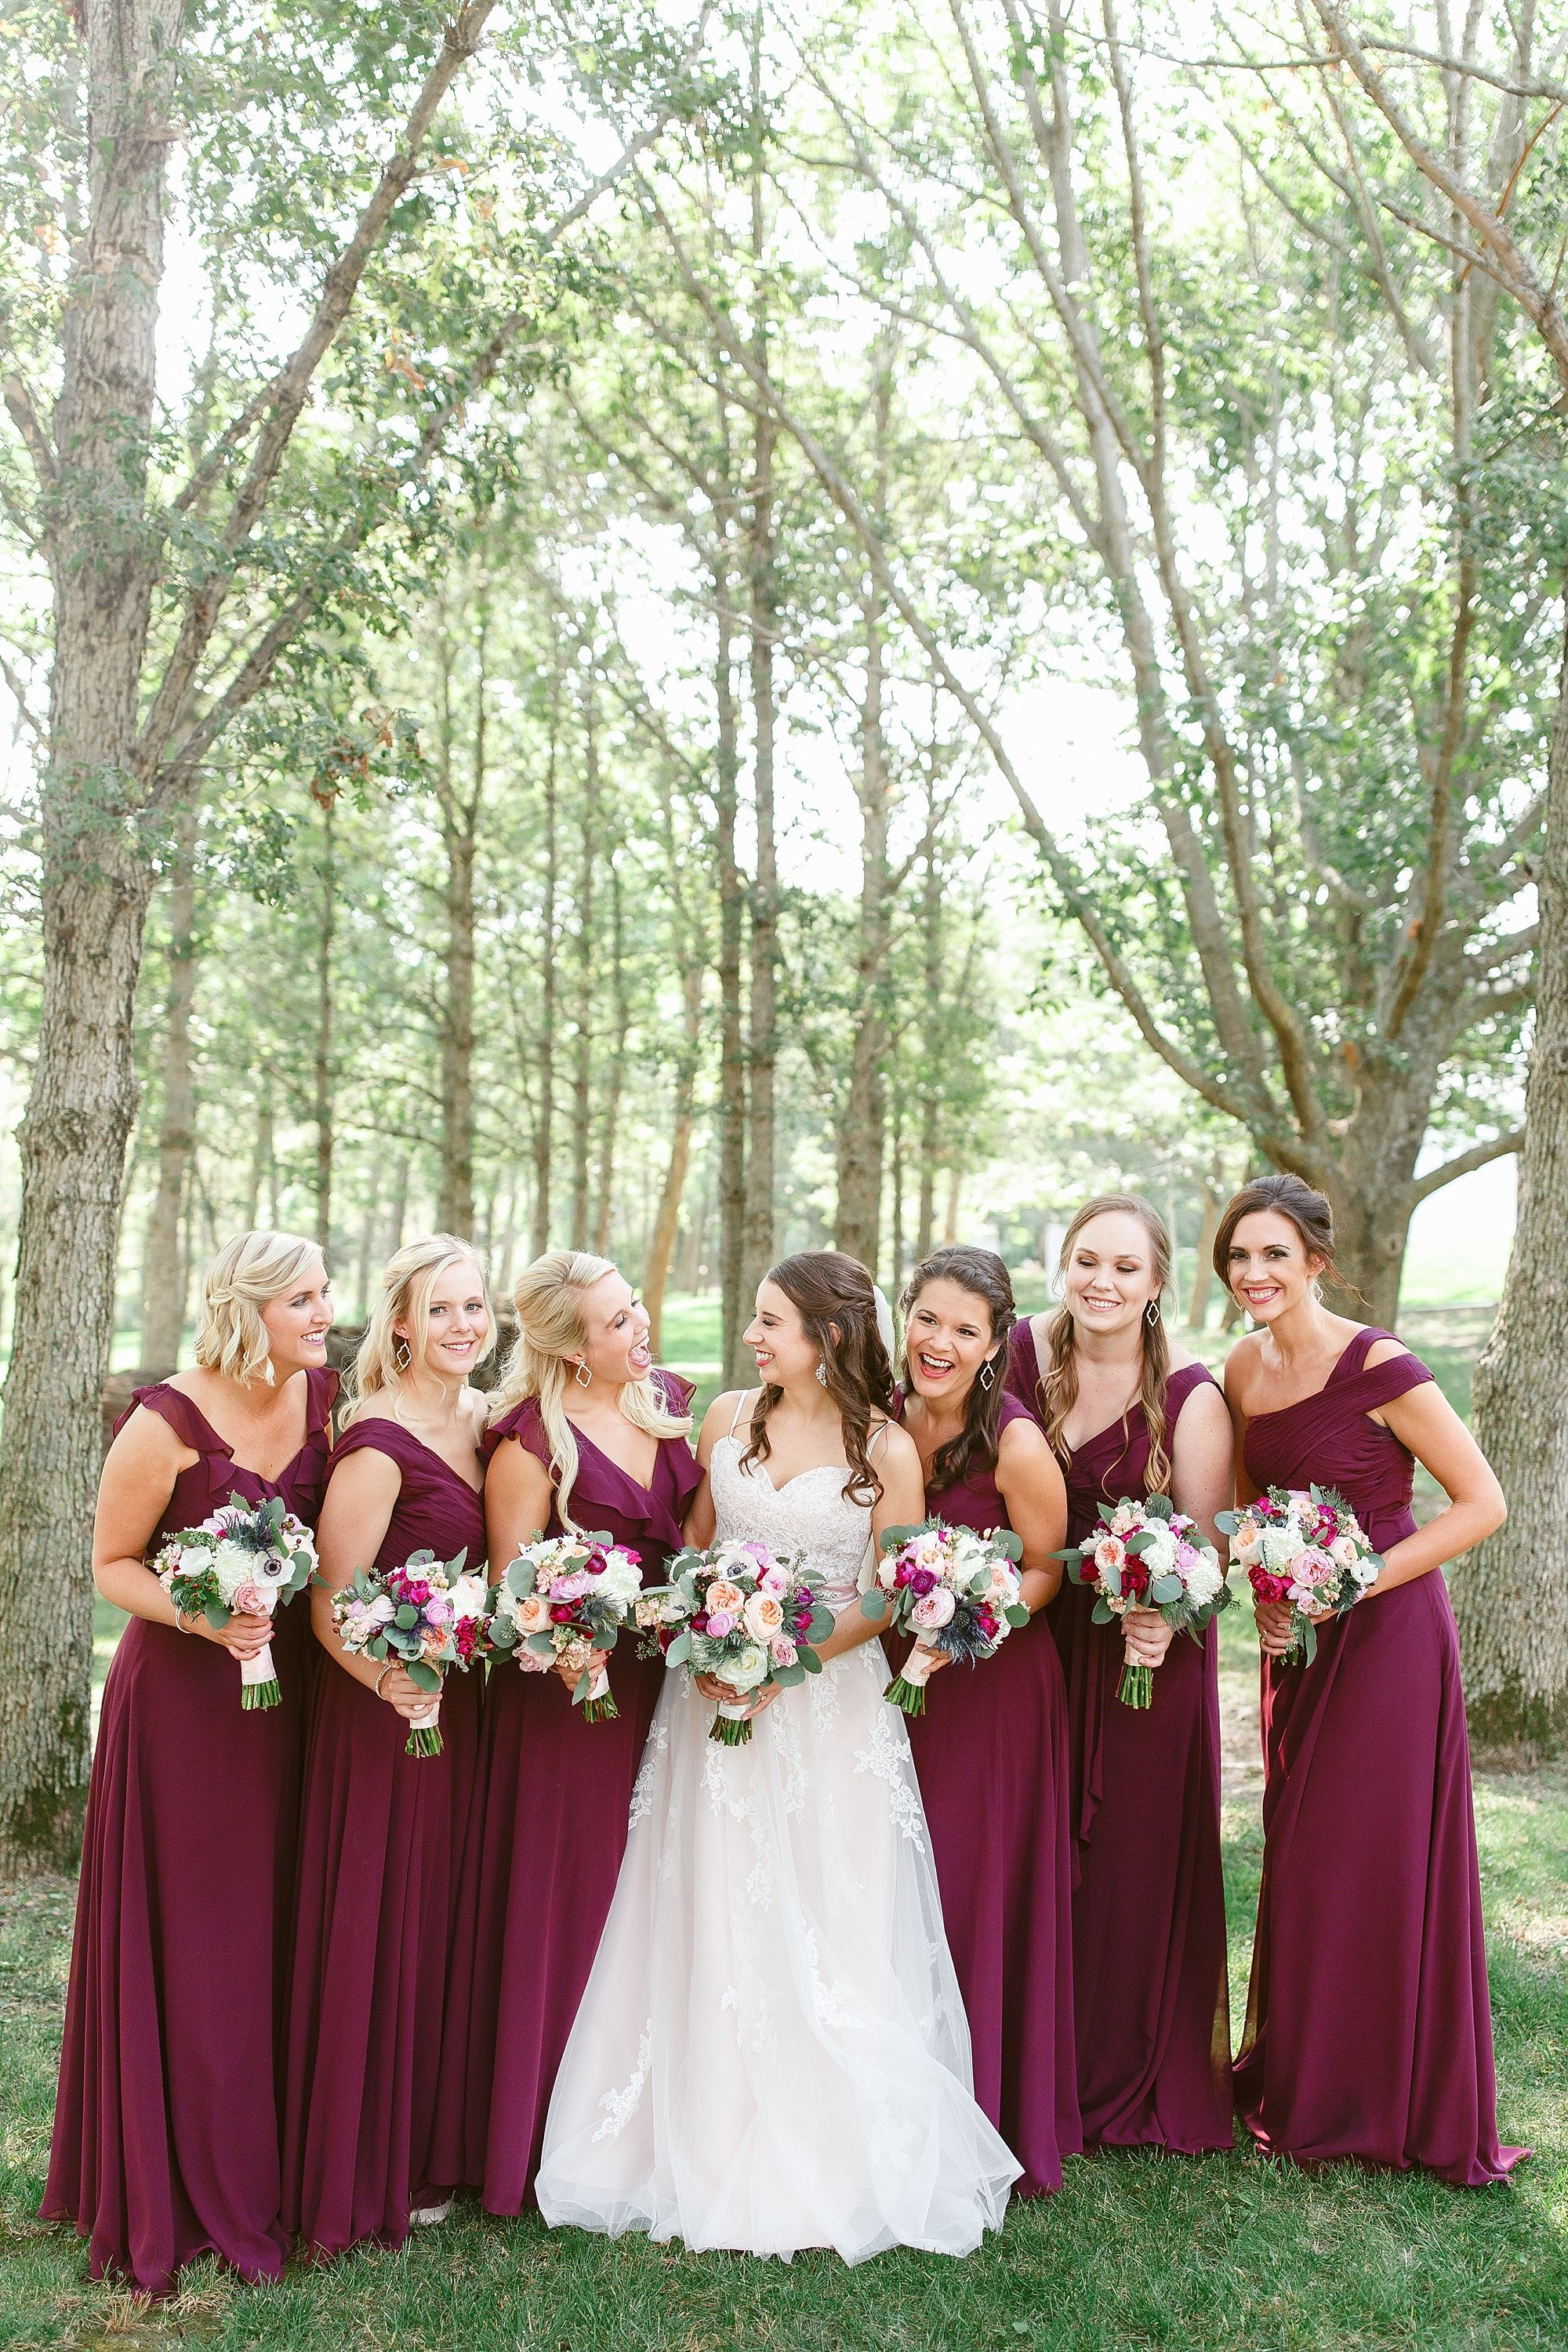 Barn Wedding Red Bridesmaid Dresses Red Dresses Maroon Bridesmaid Dresses Green Bridesmaid Dresses Red Wedding [ 3000 x 2000 Pixel ]